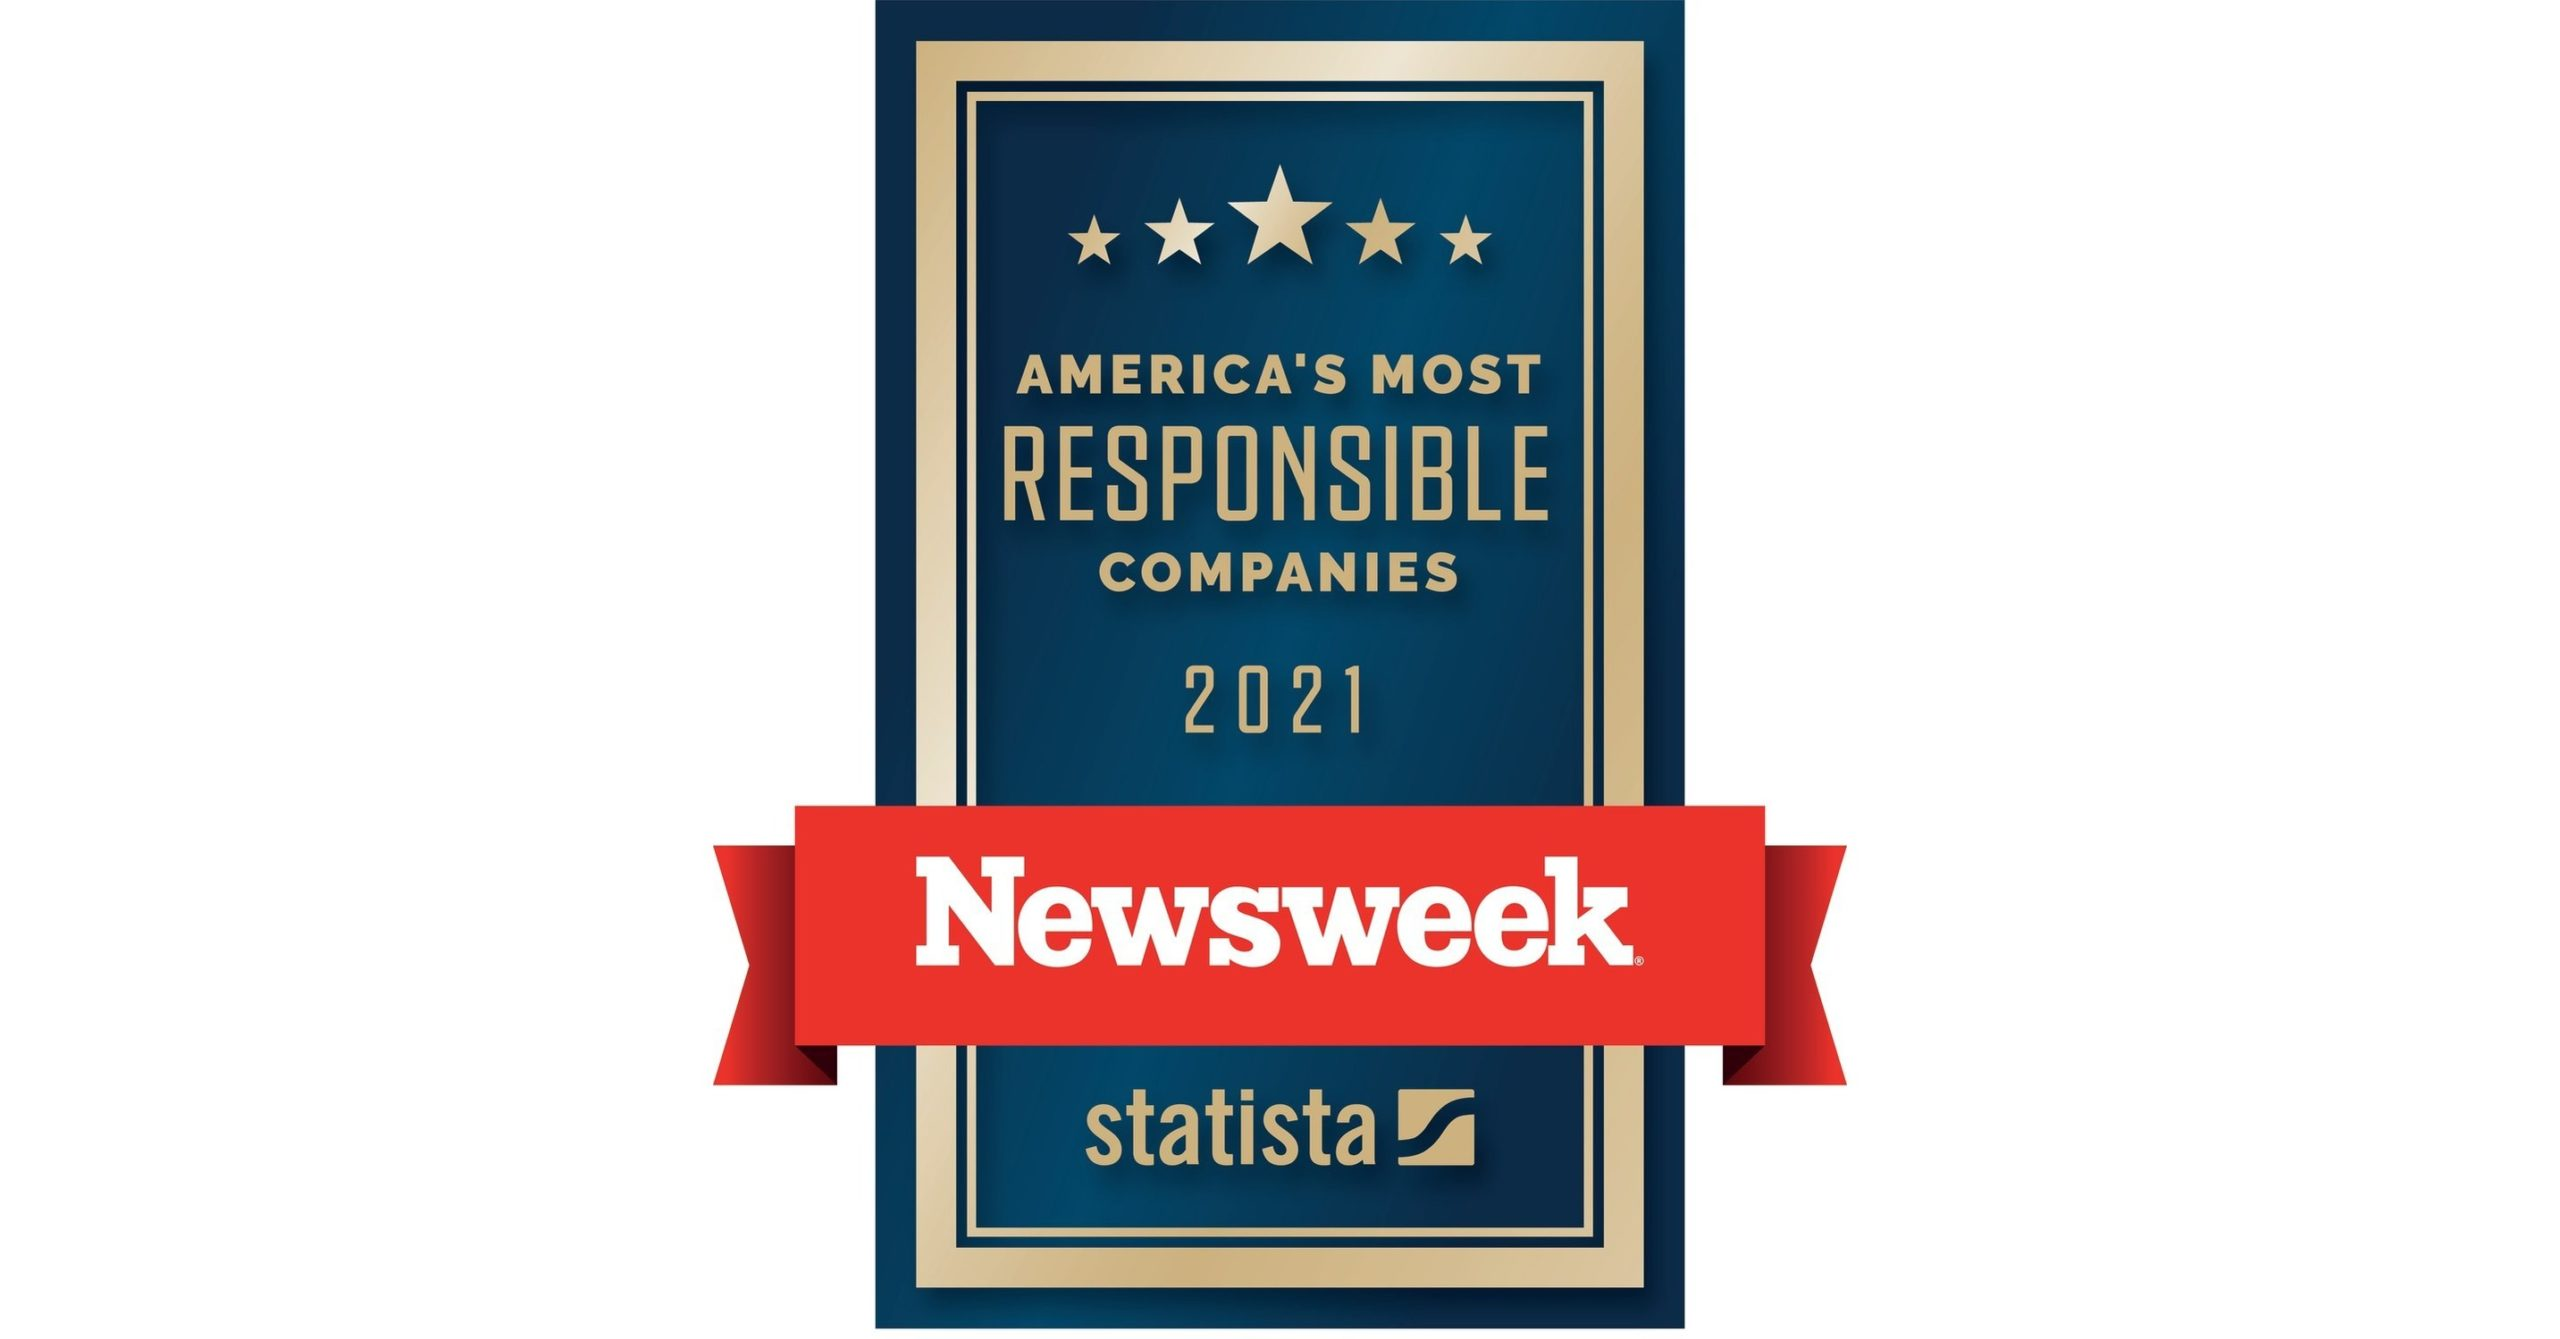 Newsweek Most Responsible